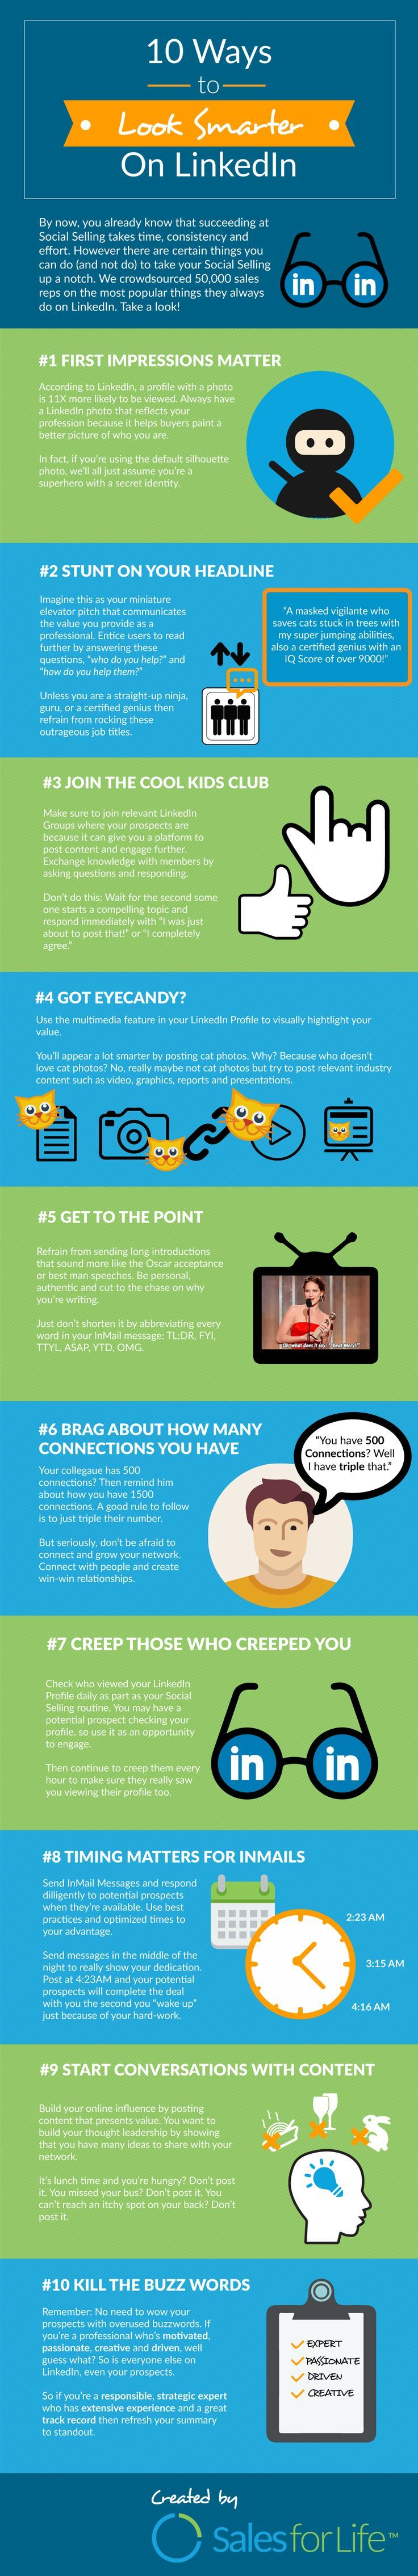 """10 Ways To Look Smarter On LinkedIn <a class=""""pintag"""" href=""""/explore/Infographic/"""" title=""""#Infographic explore Pinterest"""">#Infographic</a> <a class=""""pintag searchlink"""" data-query=""""#LinkedIn"""" data-type=""""hashtag"""" href=""""/search/?q=#LinkedIn&rs=hashtag"""" rel=""""nofollow"""" title=""""#LinkedIn search Pinterest"""">#LinkedIn</a>"""